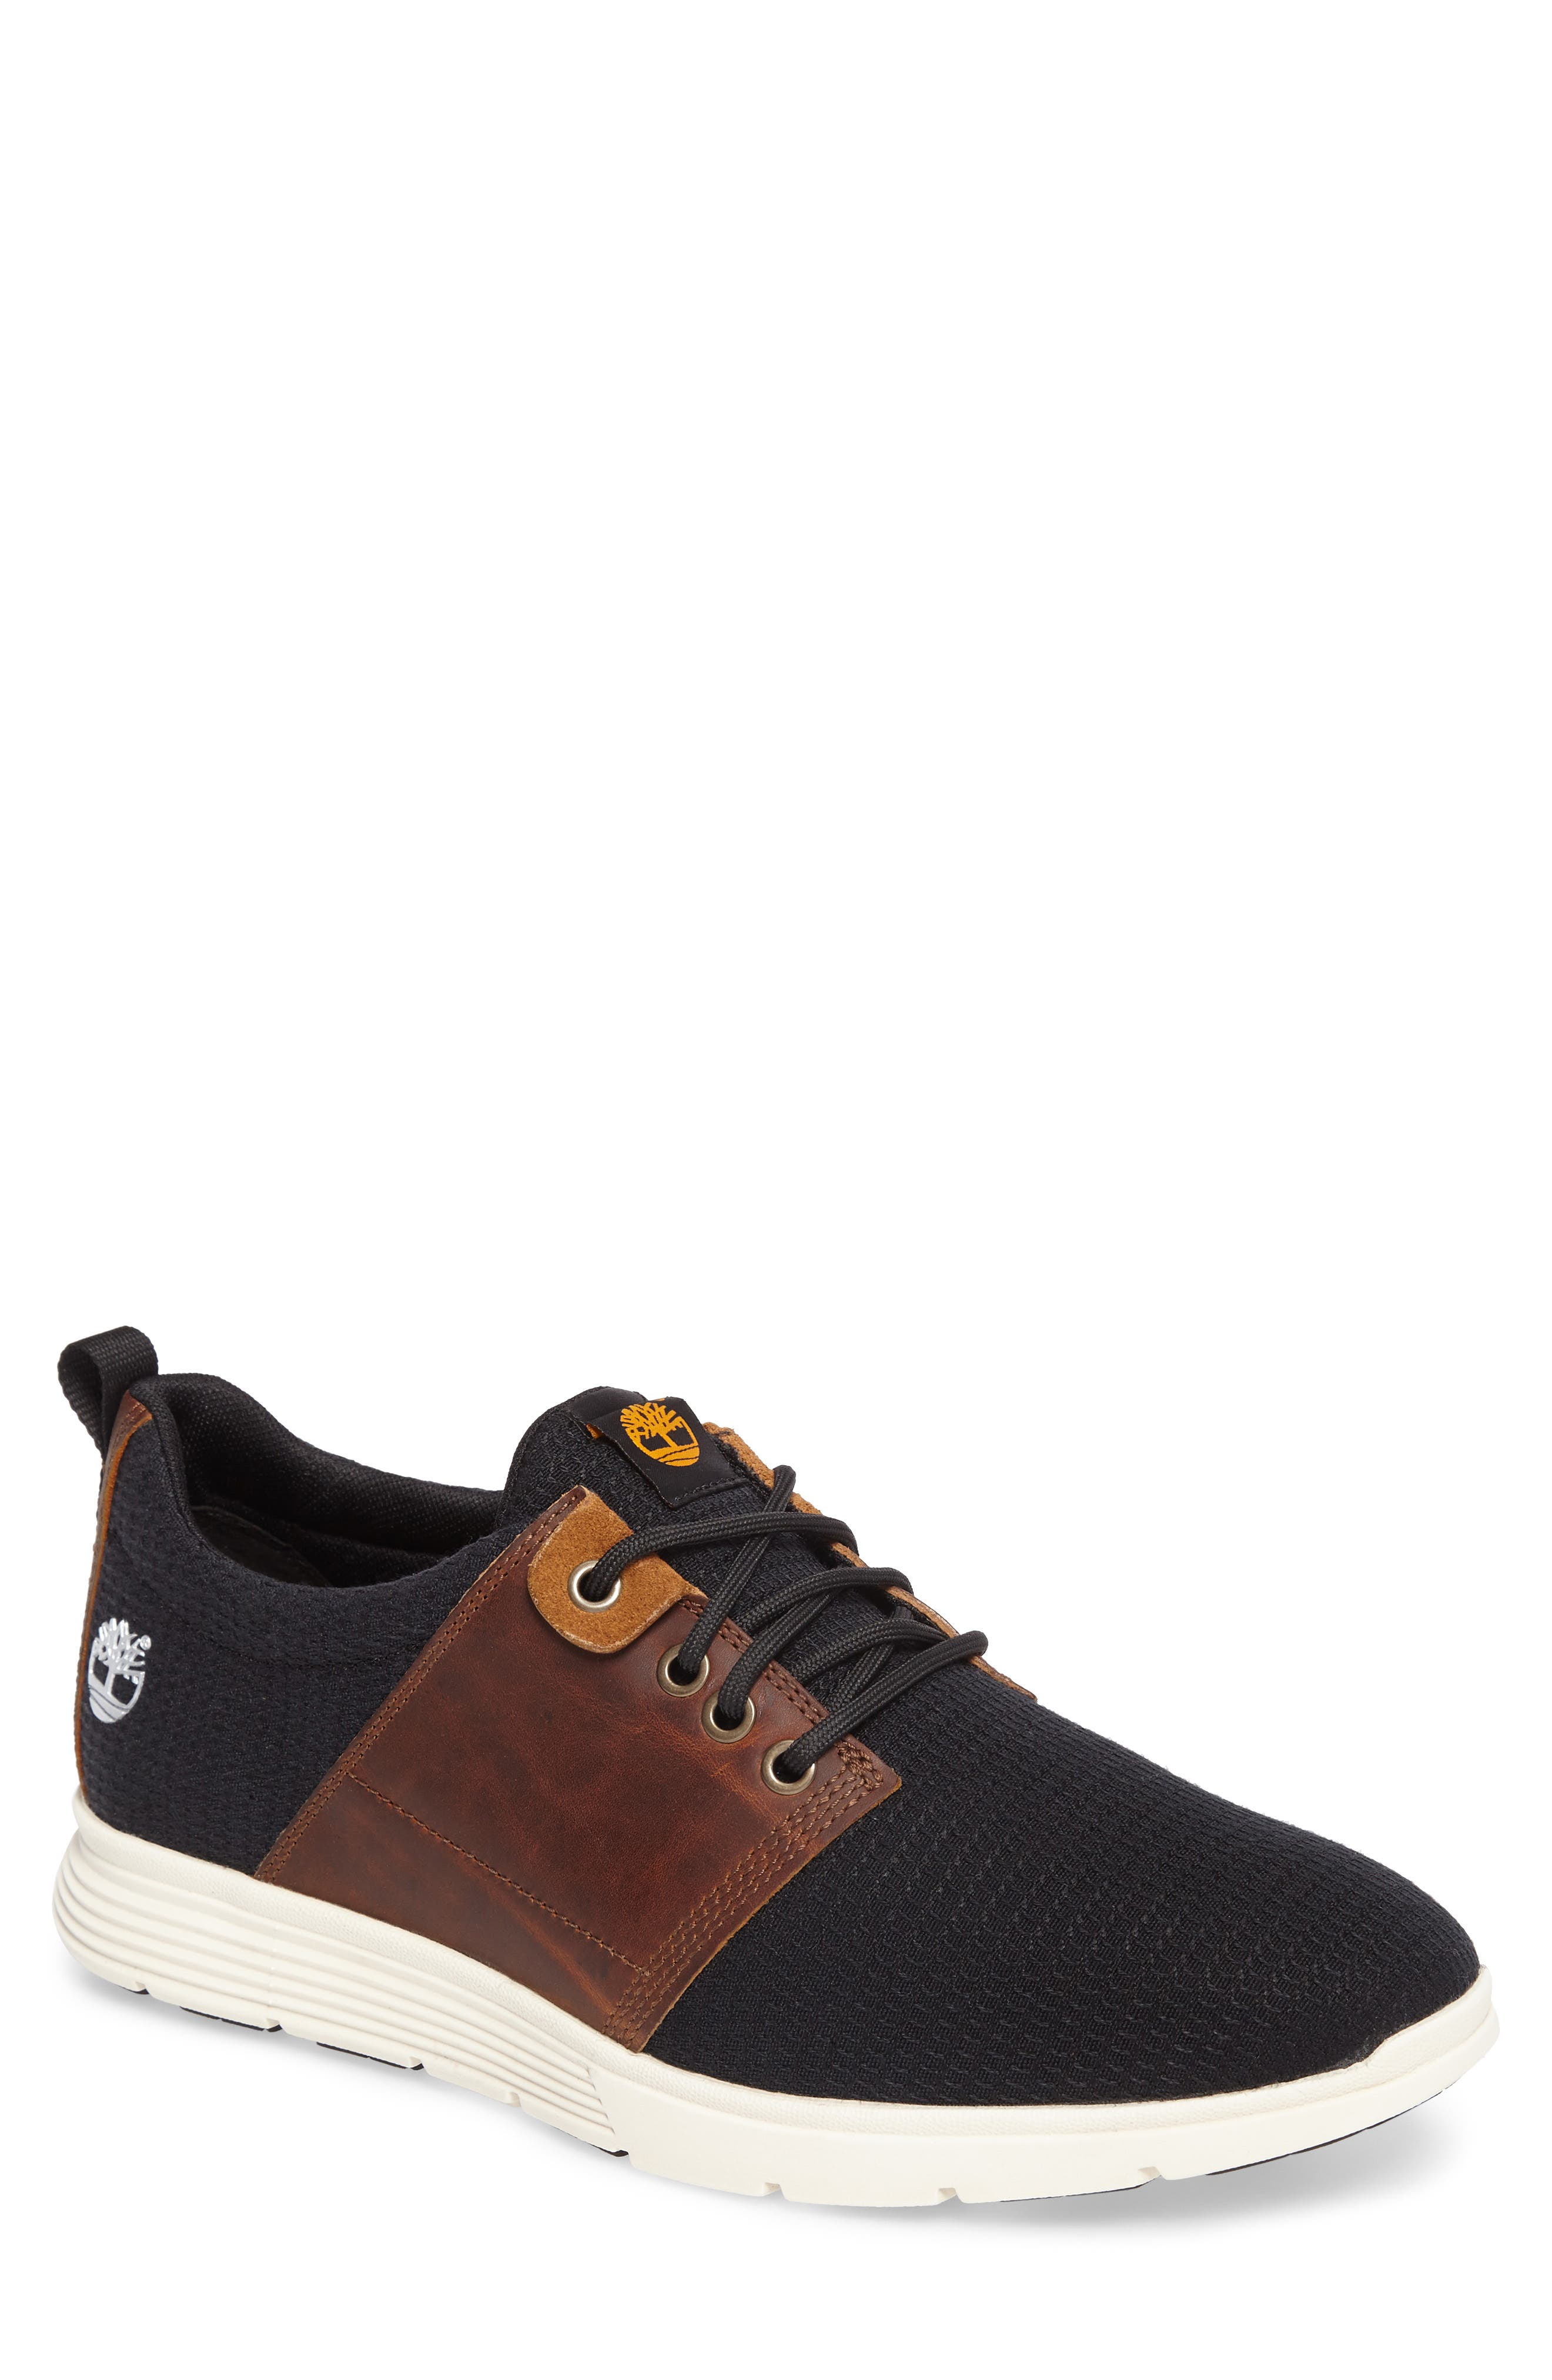 Alternate Image 1 Selected - Timberland Killington Derby (Men)